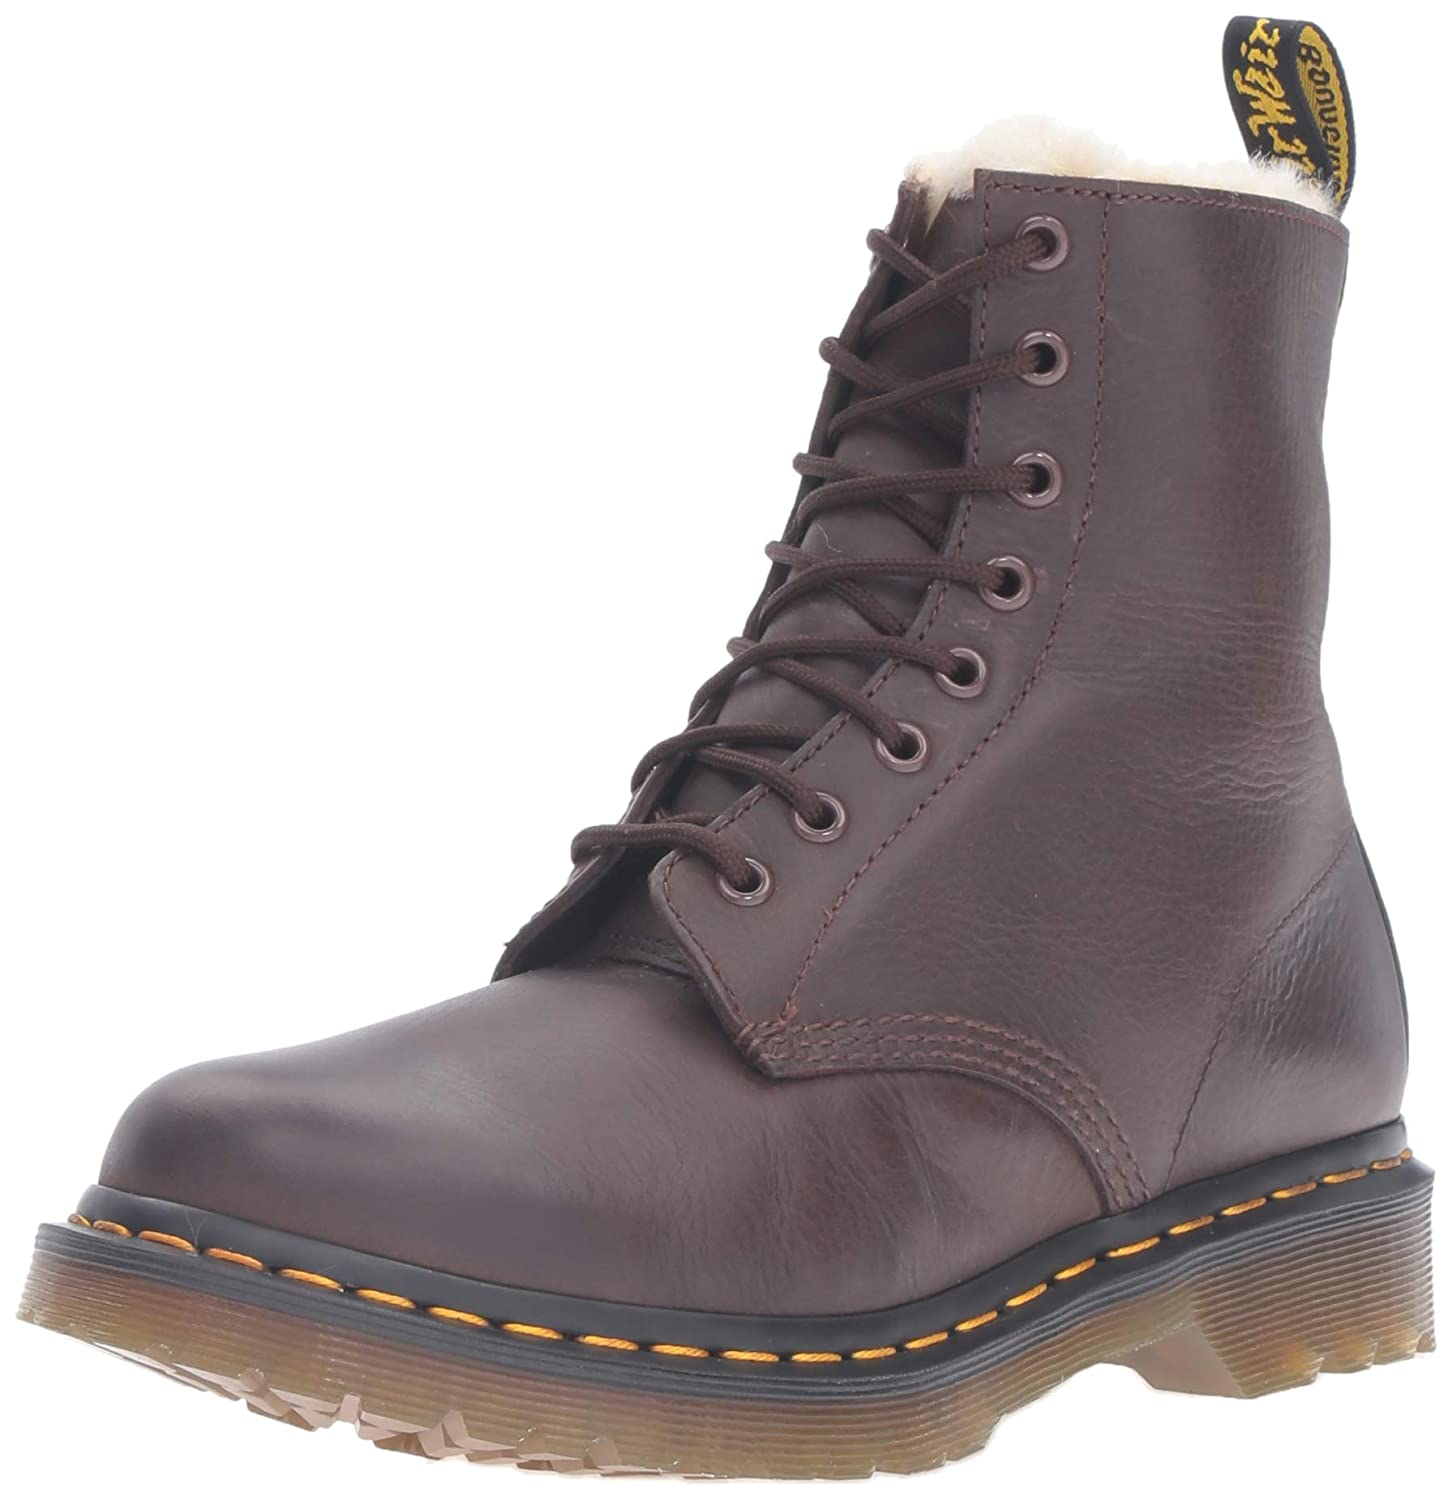 Fur lined Serena Dr Martens. They have my name on them